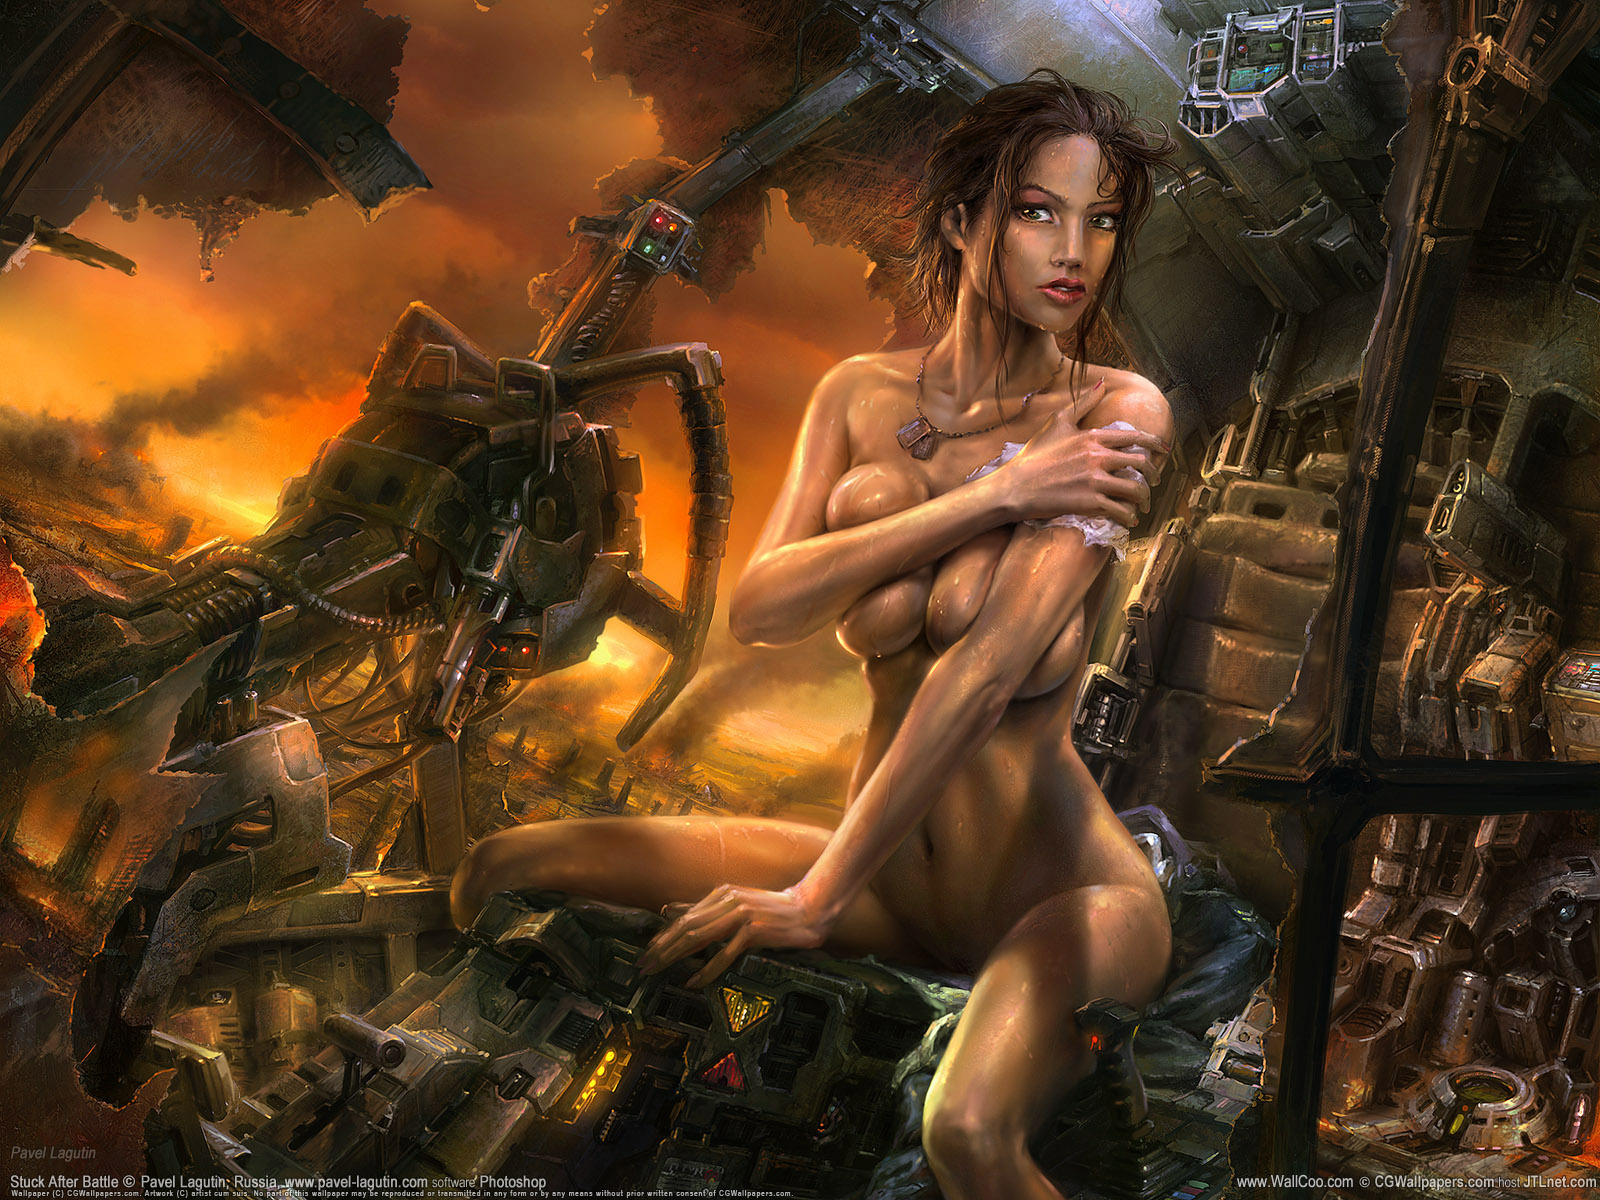 Erotic sci-fi fan art exploited pictures